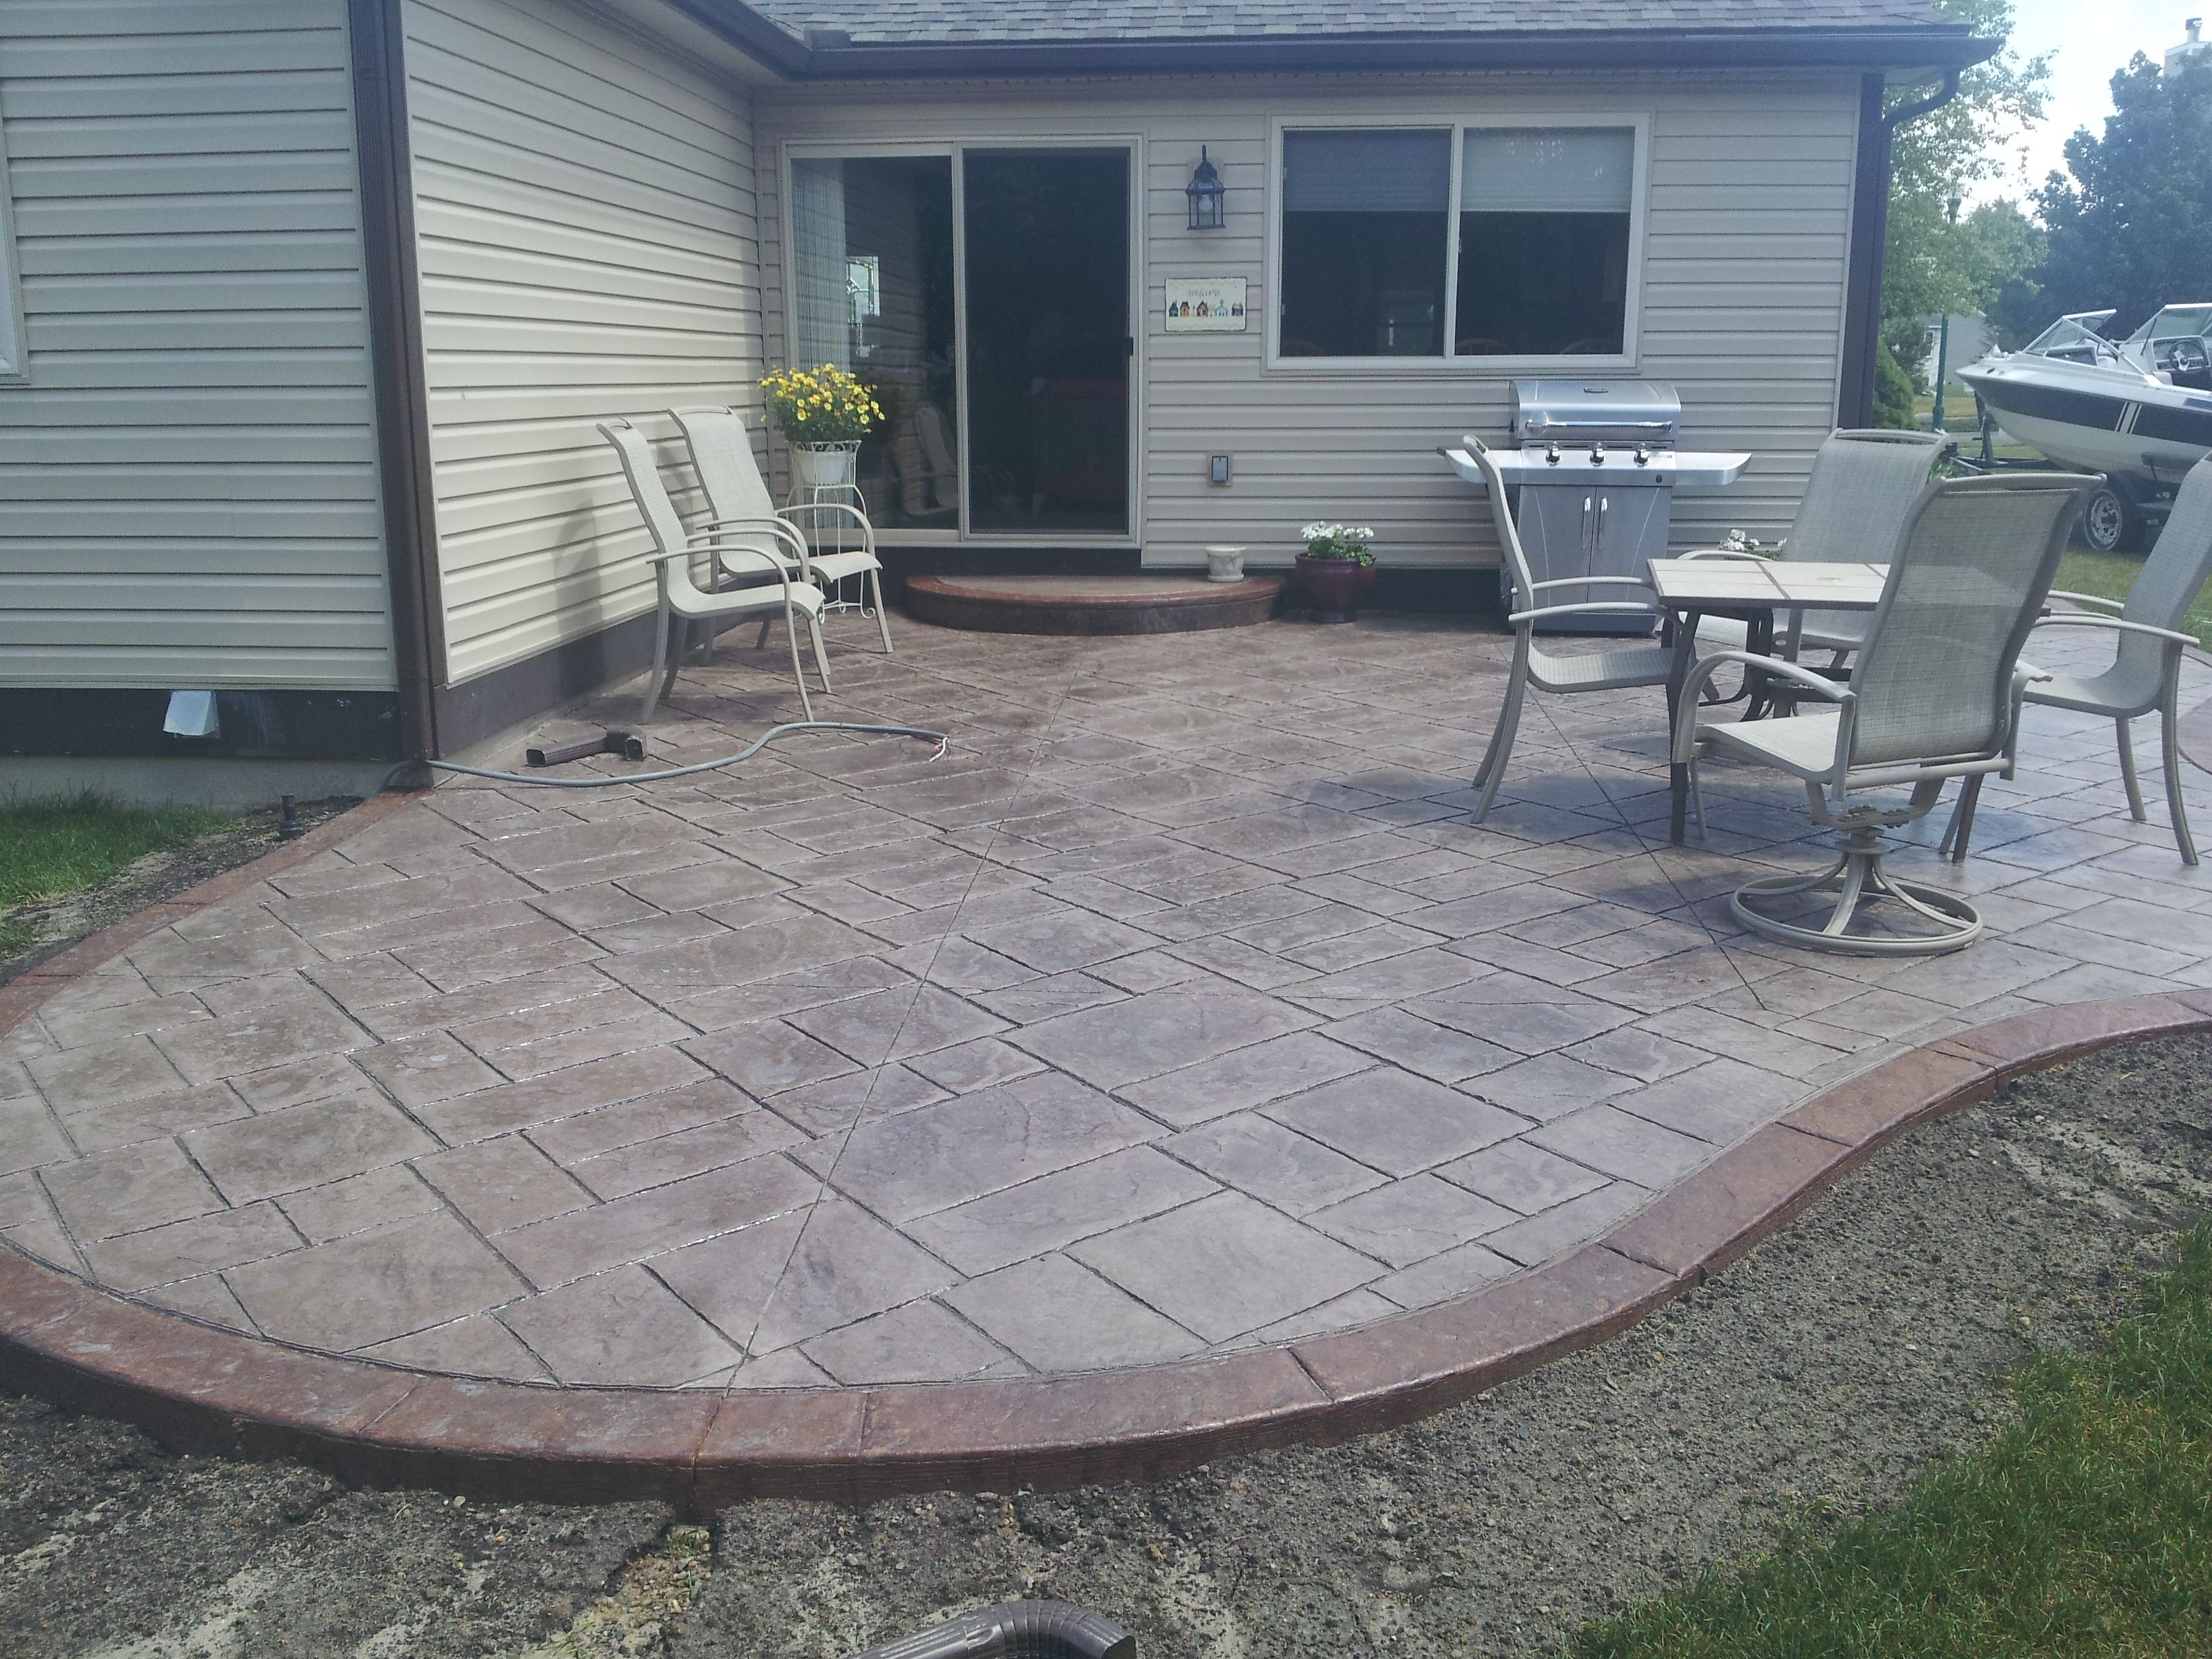 Stamped Concrete Design Ideas stamped concrete patio Cost For Concrete Patio Overlay Poured Fabulous Decorative Resurfacing Columbus Ohious Leader In Resurface Driveway Stamped